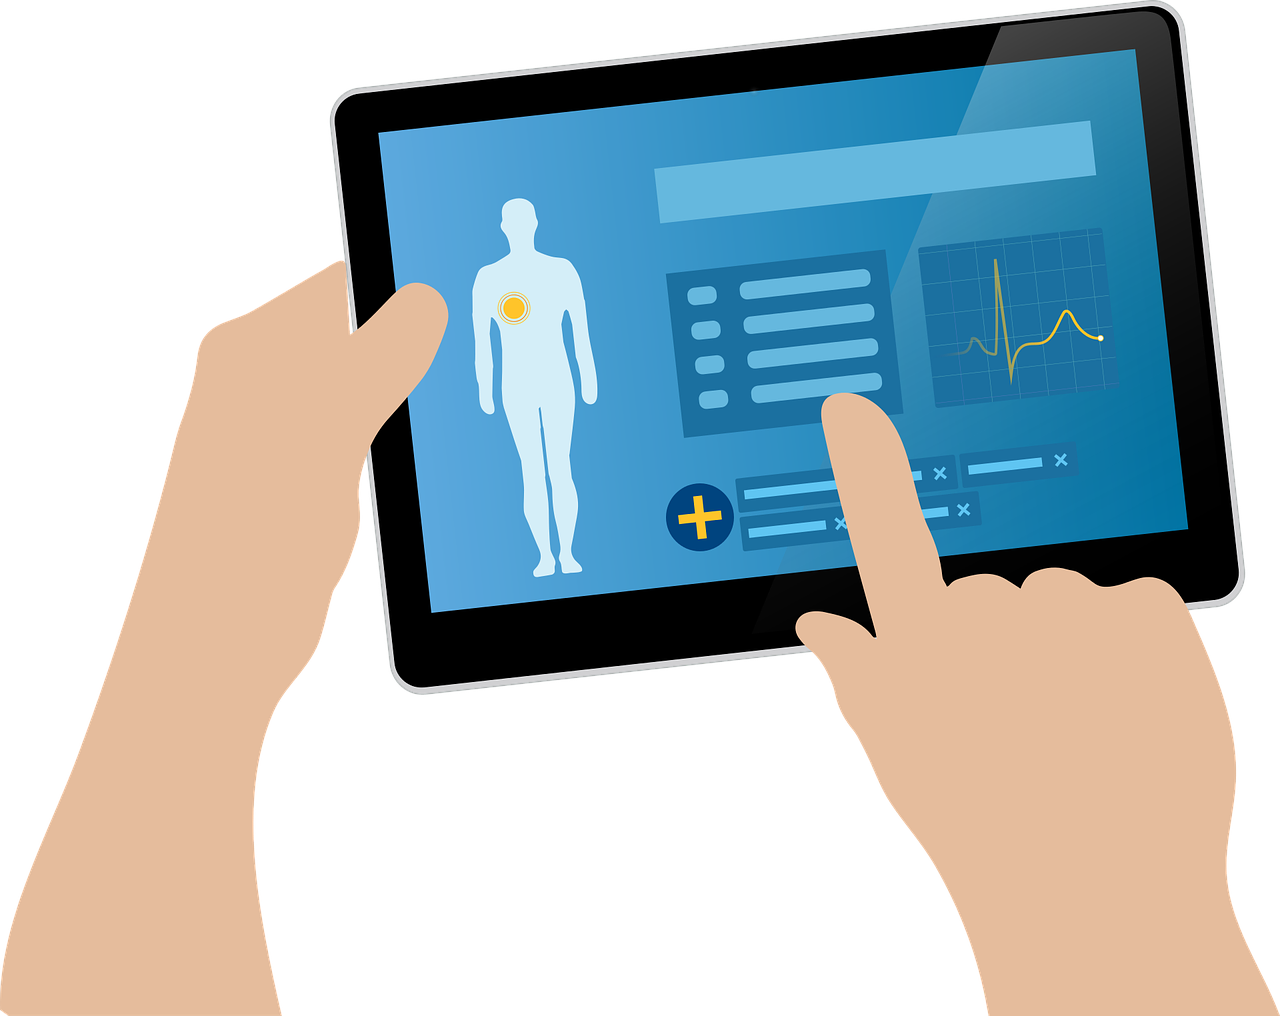 Marketing automation can help create personailized connections with patients.